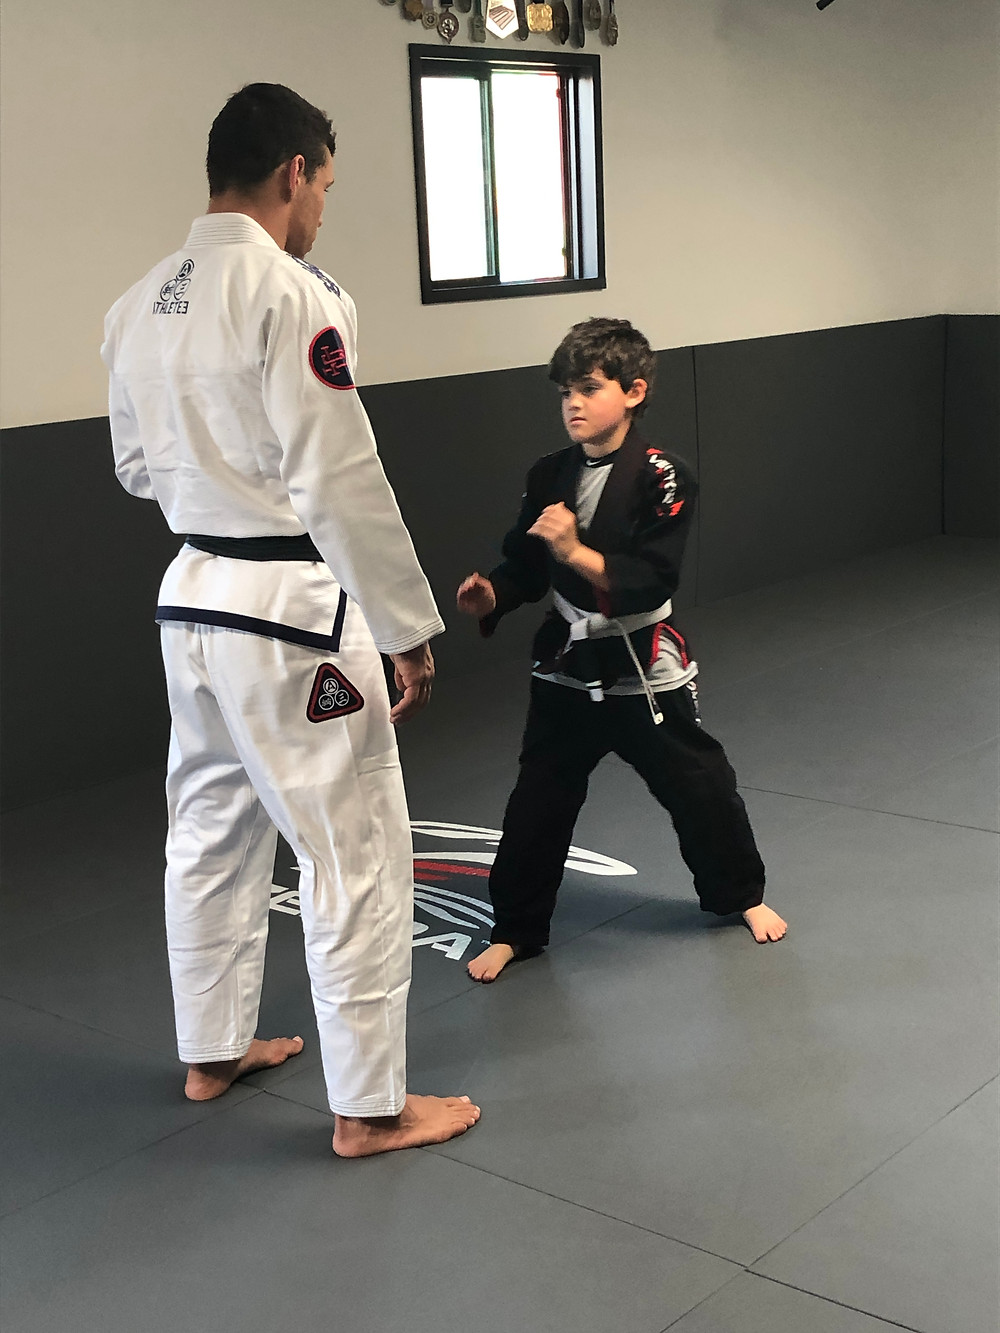 Brazilian Jiu-Jitsu professor Thiago Rodrigues instructs a young student